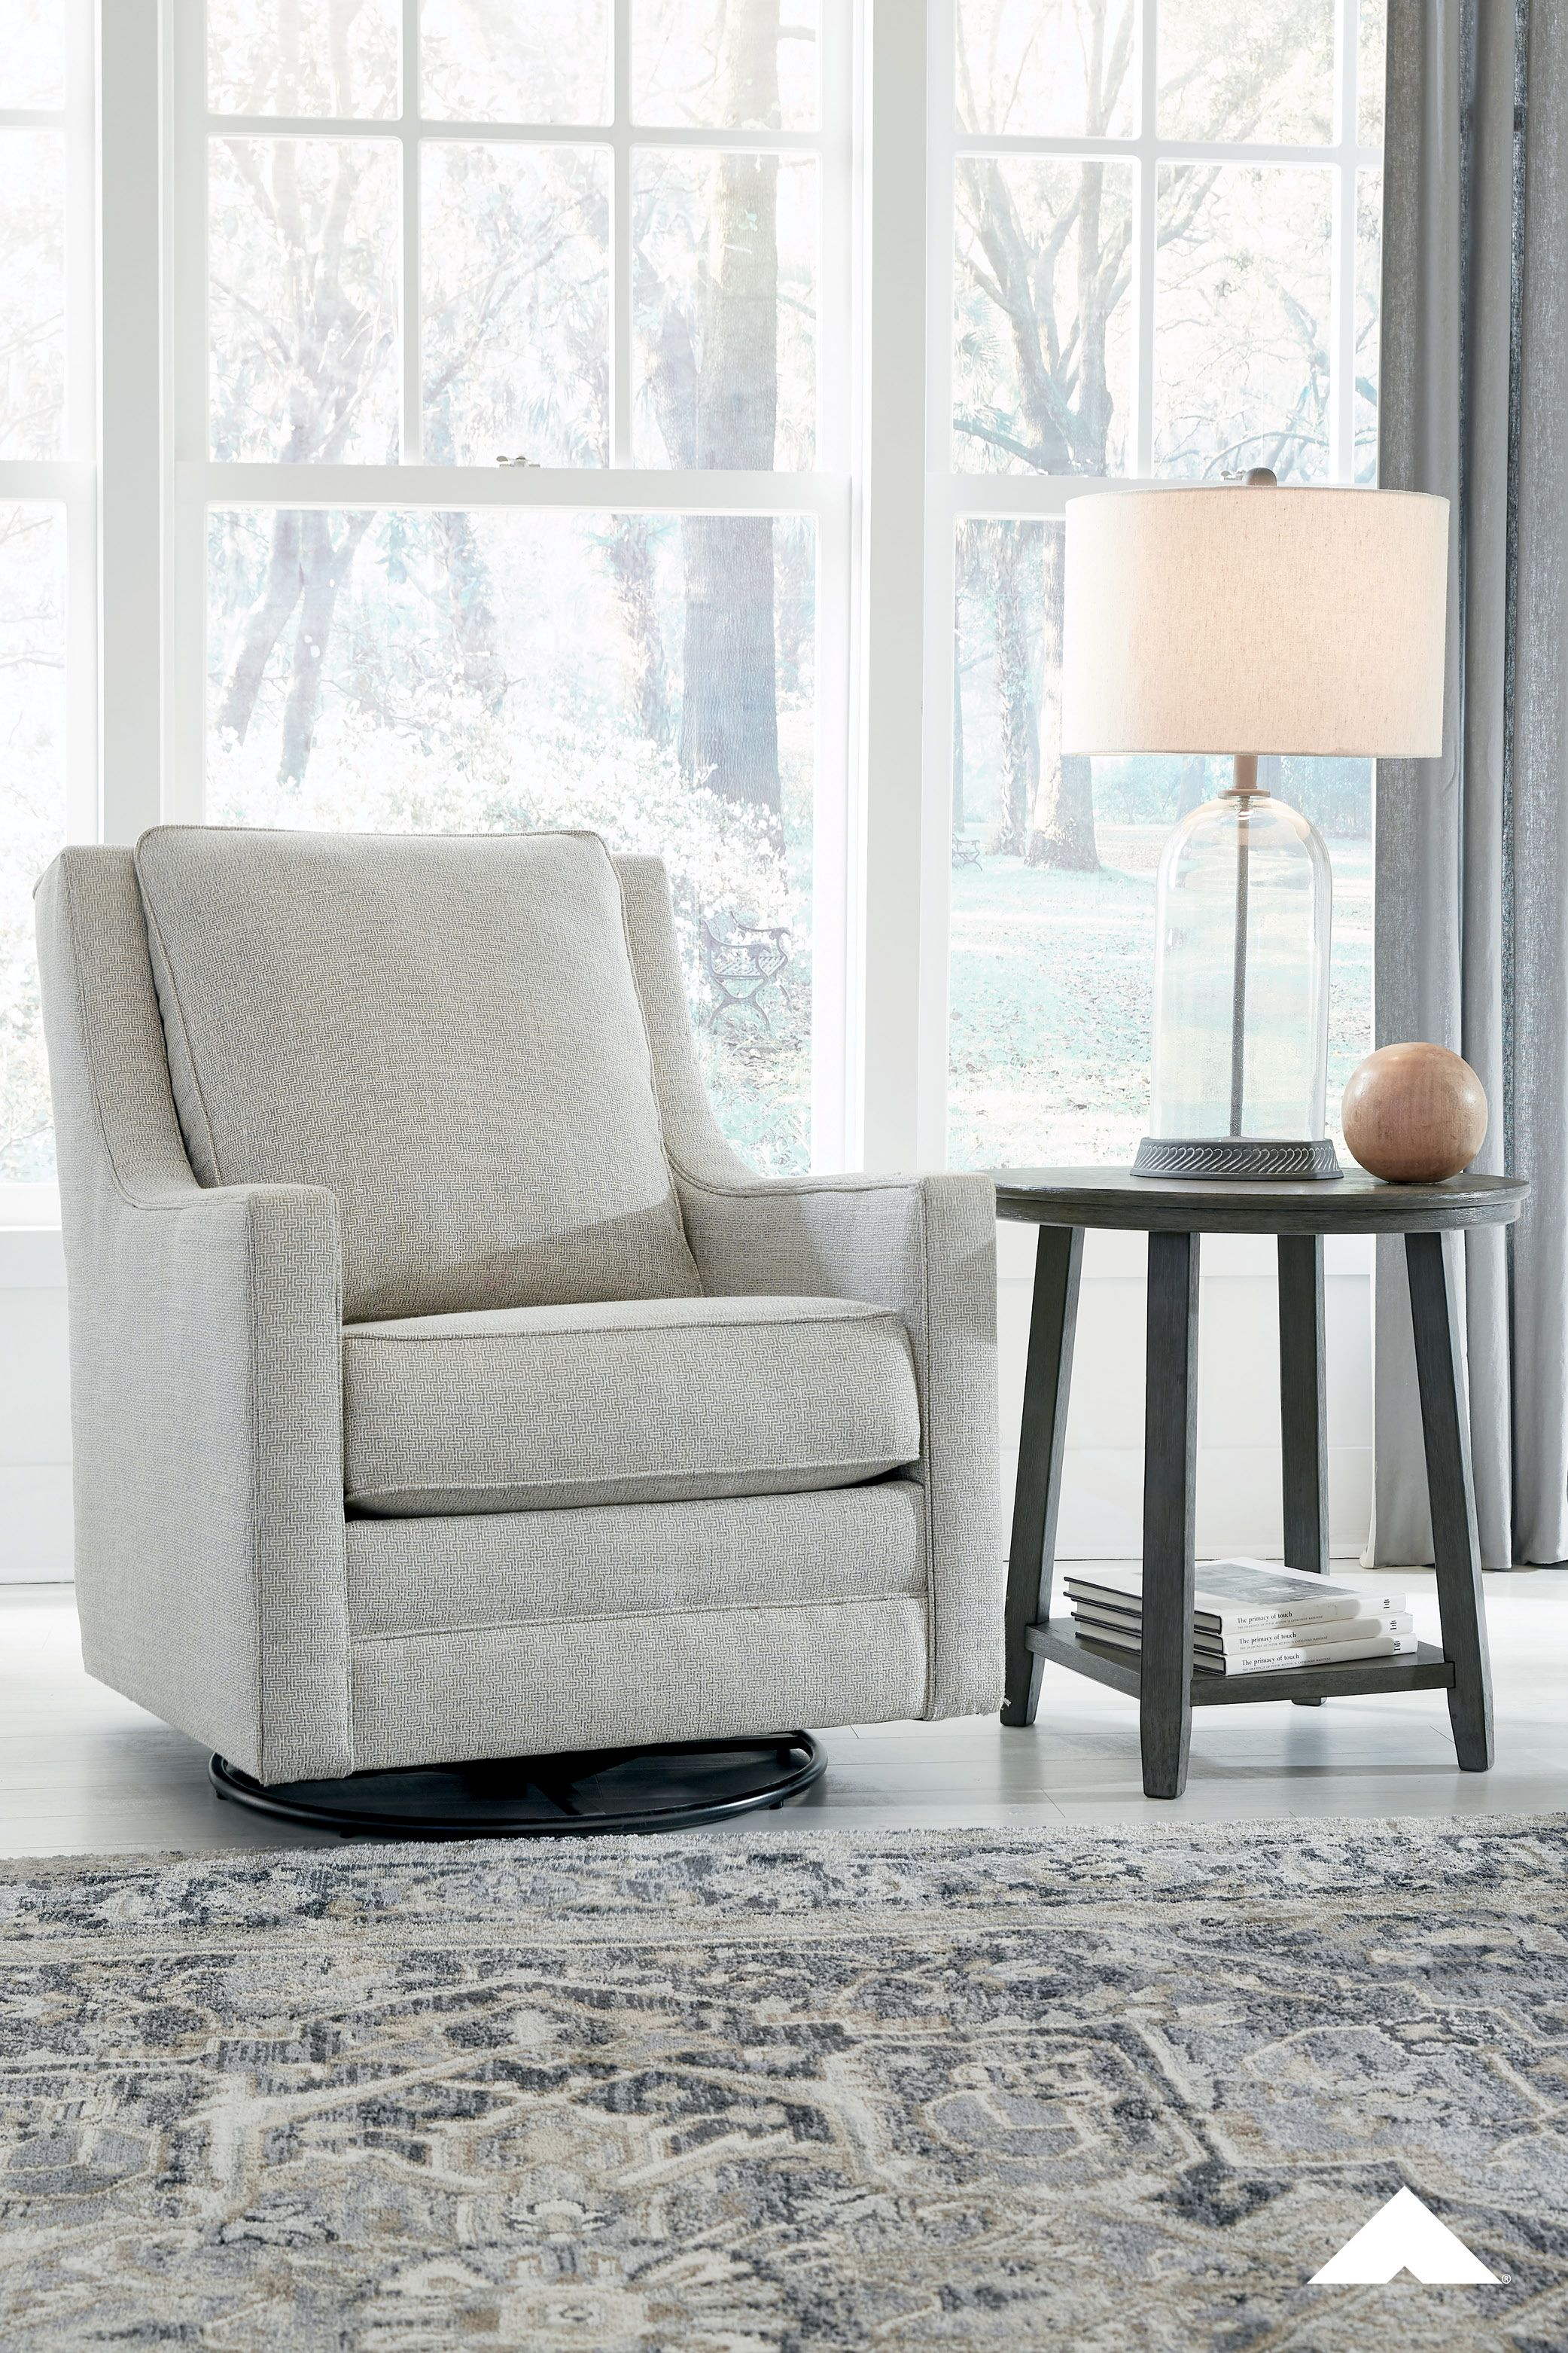 Kambria Frost Swivel Glider Accent Chair By Ashley Furniture Crisp And Cool But Not Without Its In 2020 Ashley Furniture Furniture Design Ashley Furniture Industries